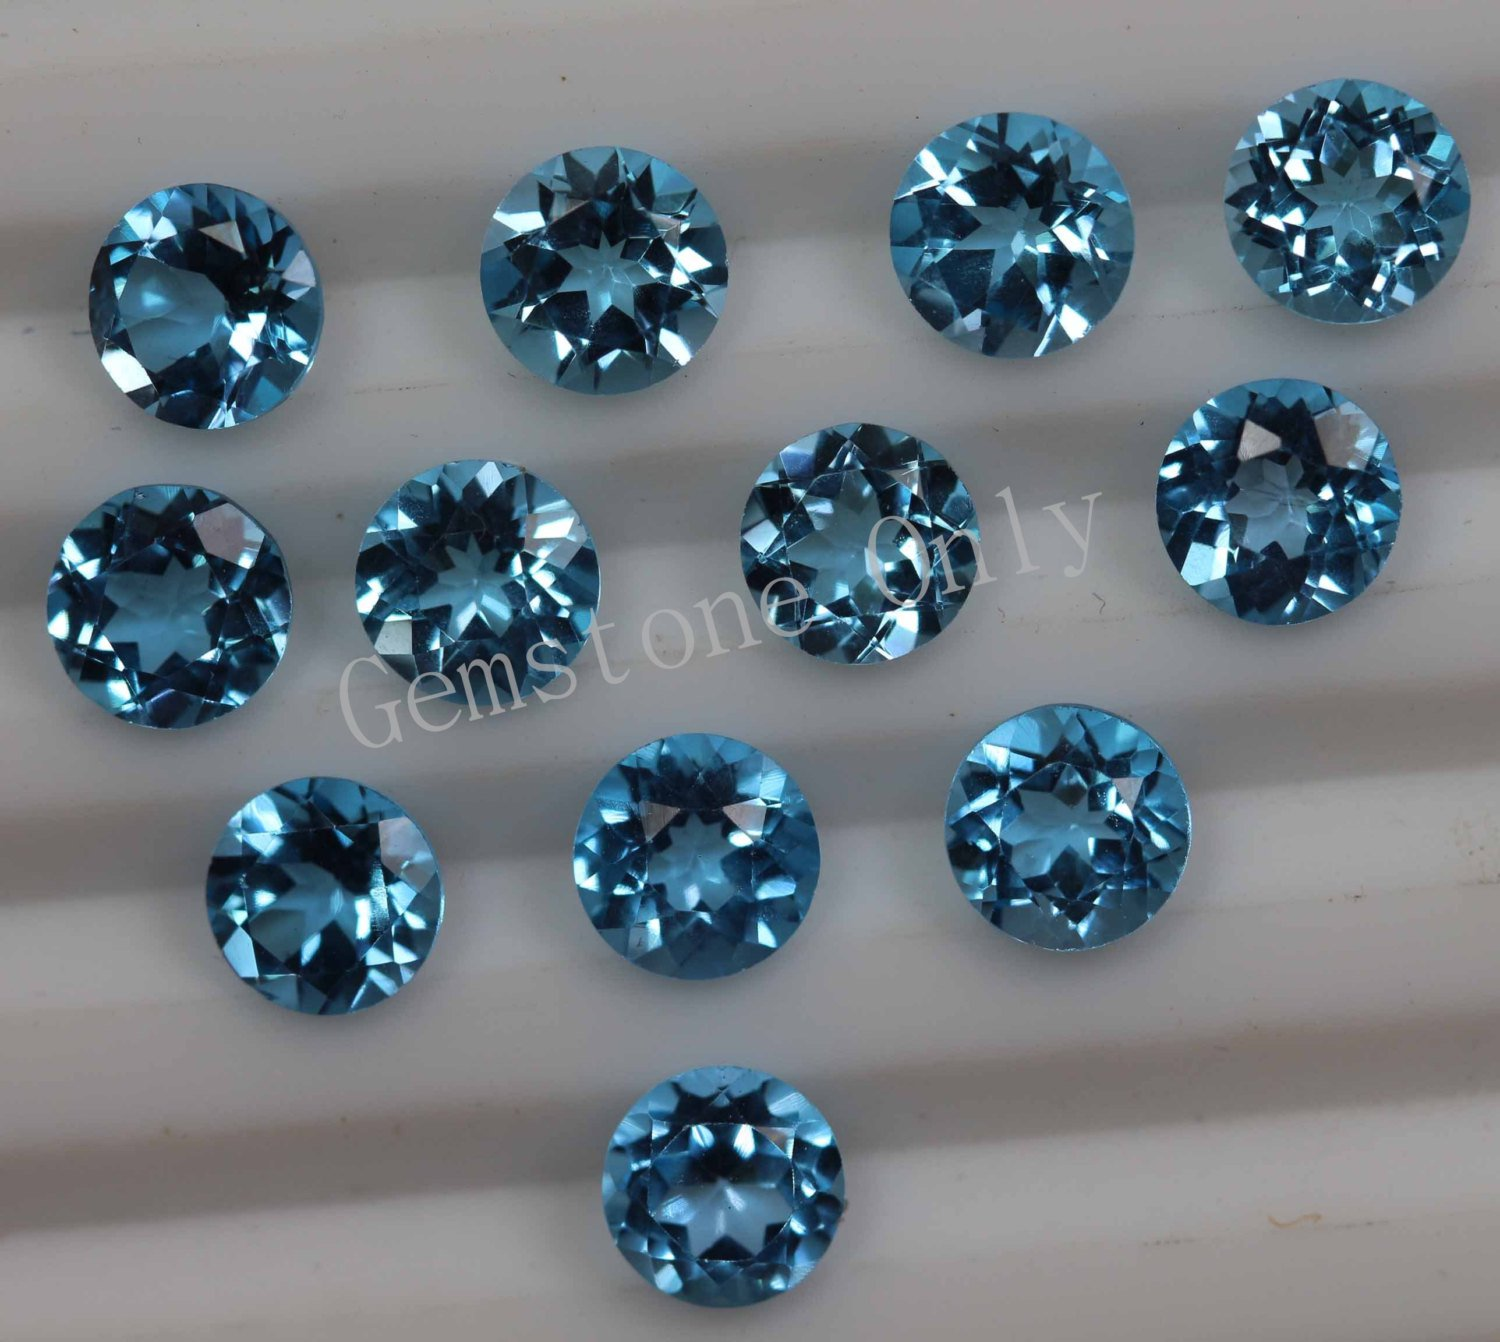 4mm Natural Swiss Blue topaz Faceted Cut Round 1 Piece Blue Color Calibrated Size Loose Gemstone